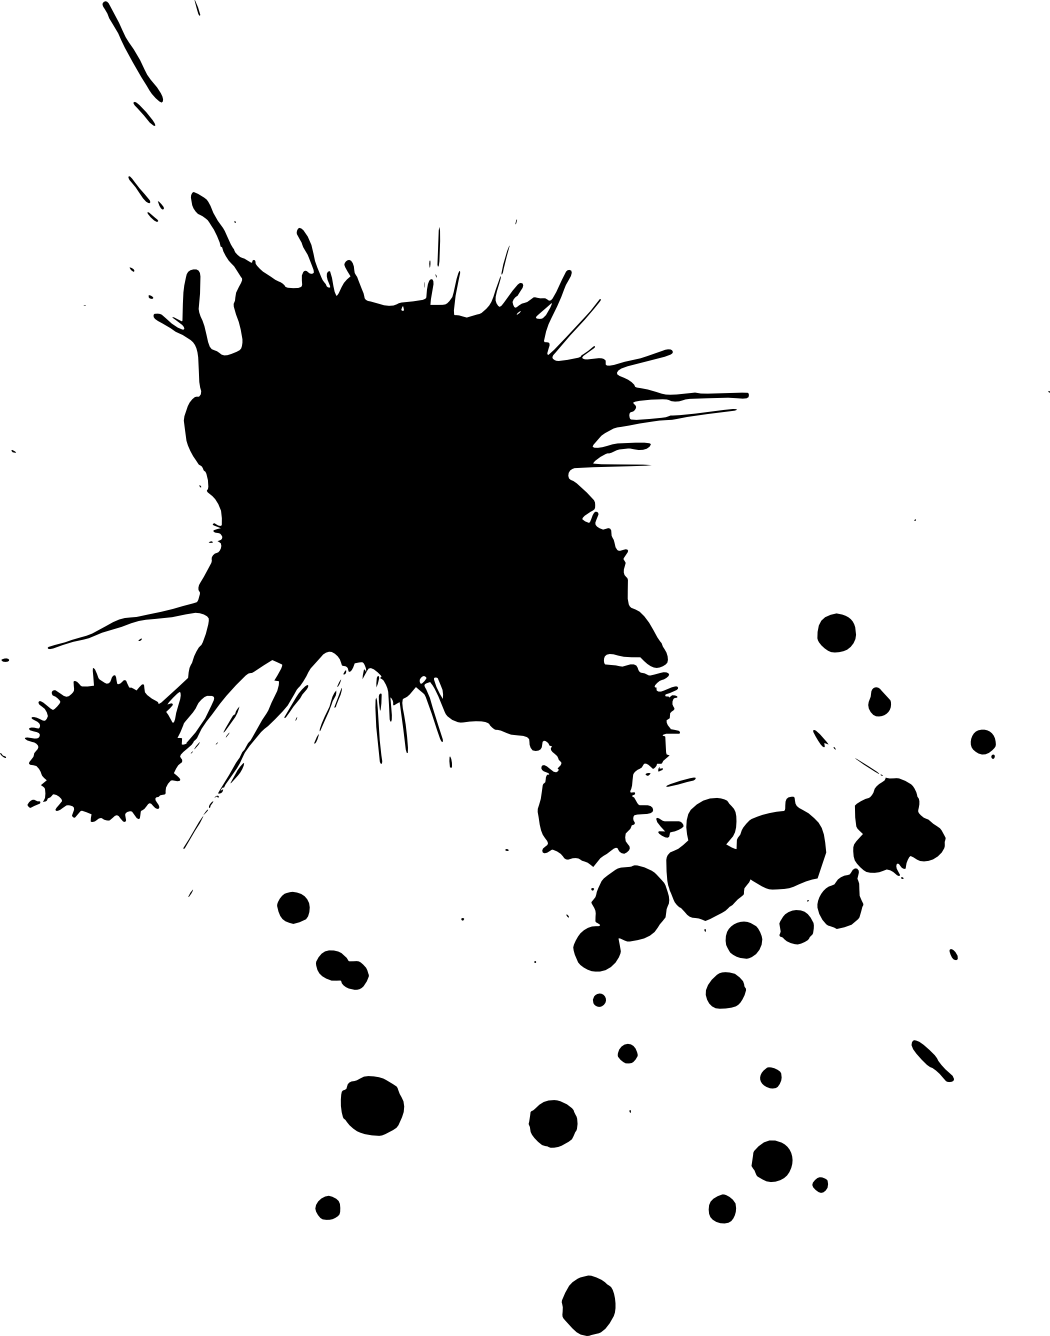 Paint Splatter Drawing : paint, splatter, drawing, Drawing, Paint, Splash, Download, 1050*1336, Transparent, Download., Library